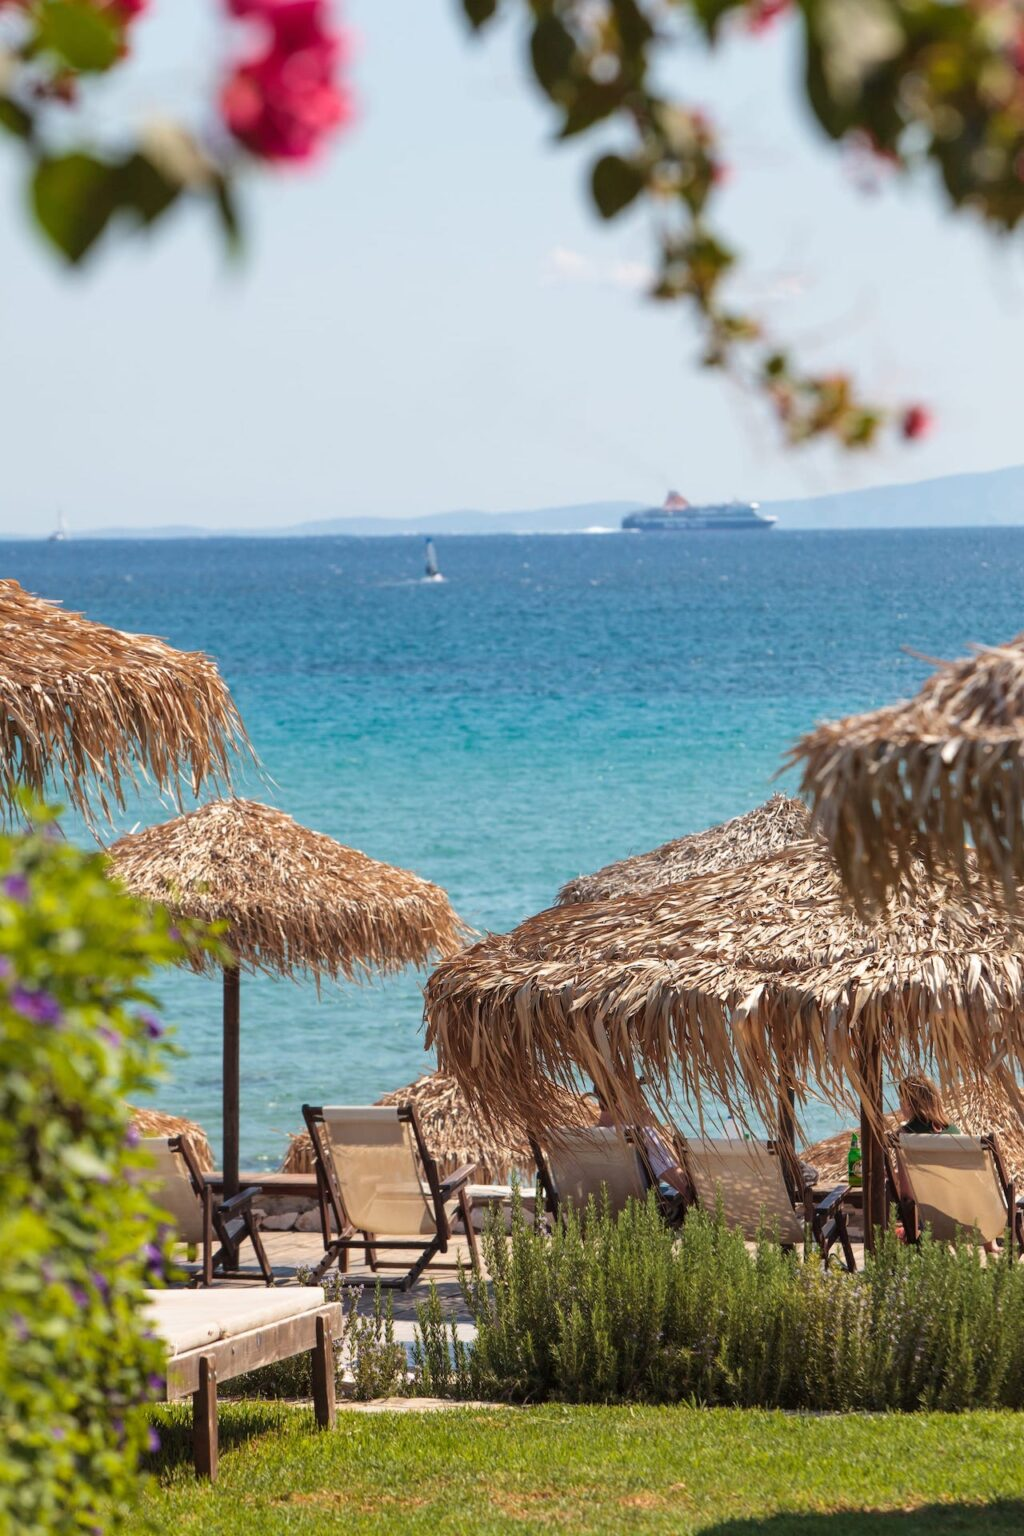 View of the blue sea as seen from the premises of the Golden Beach Hotel in Paros.